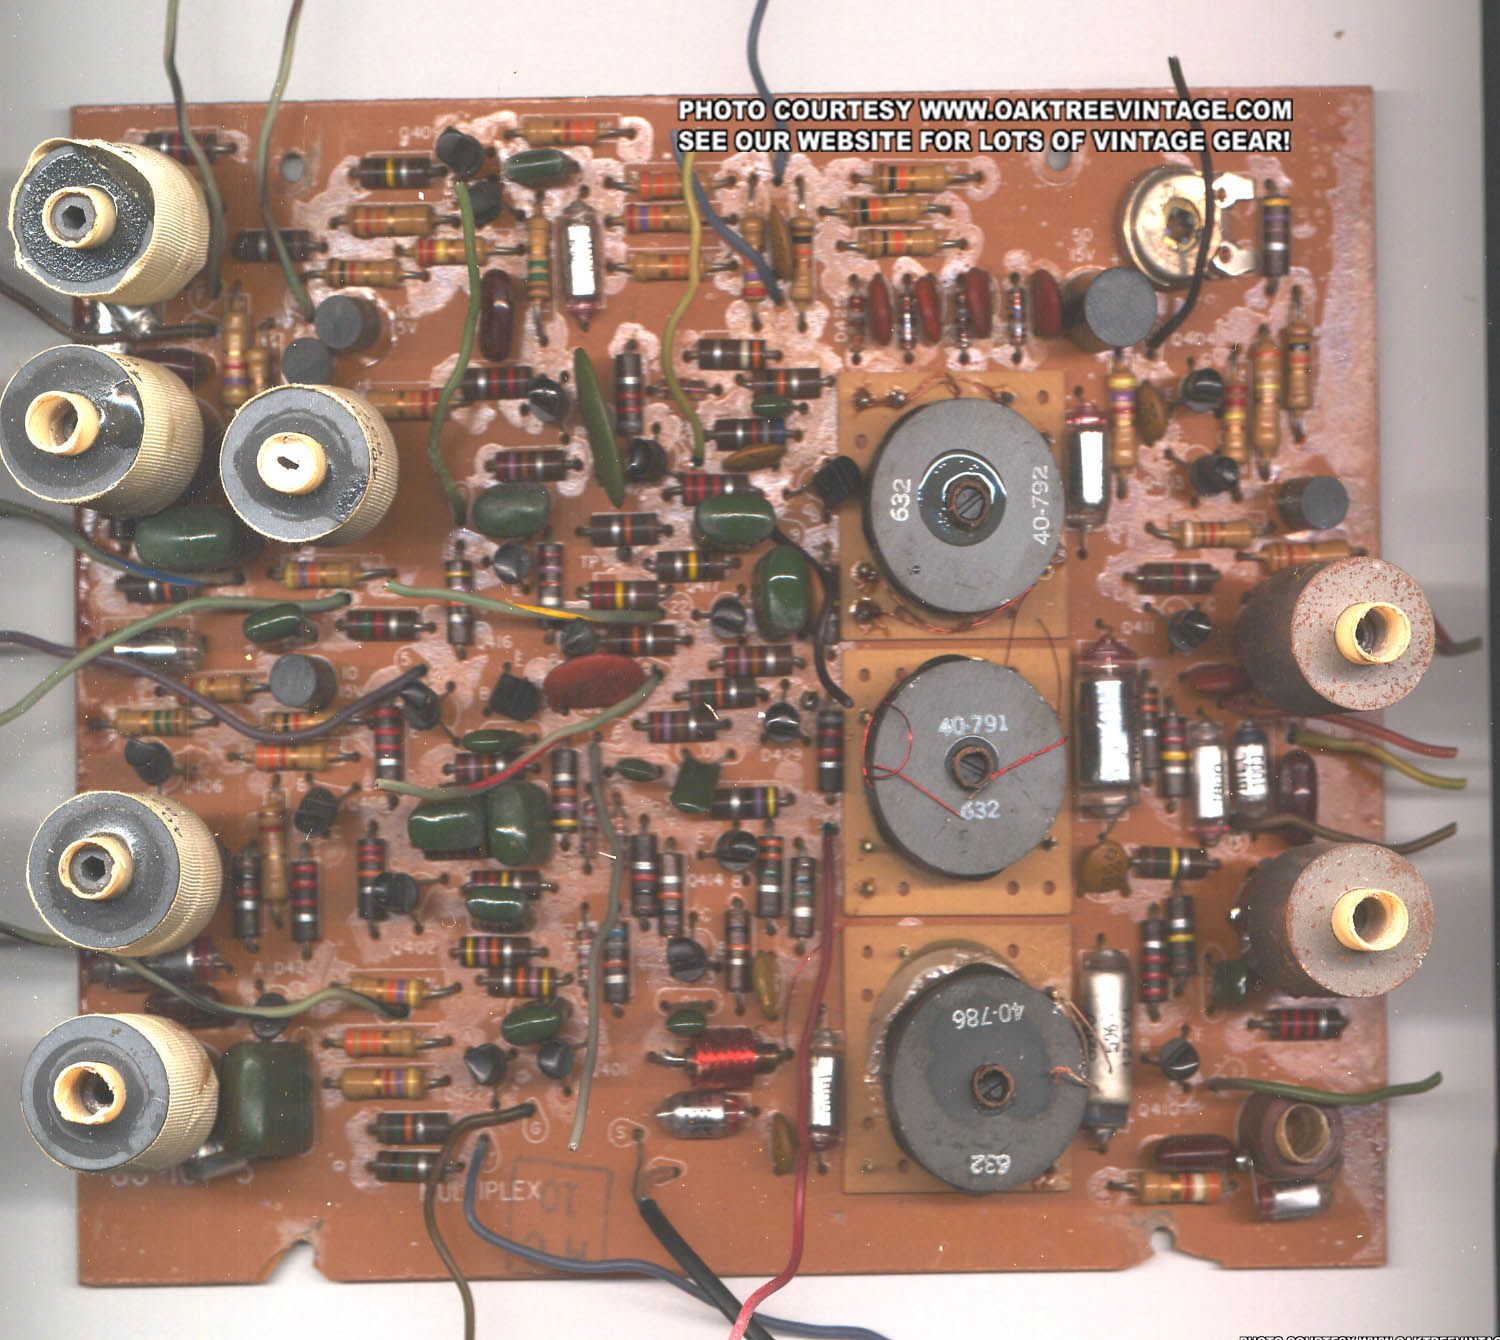 Heathkit Stereo Receiver Parts Spares Fm Circuit Board Click On Above Thumbnail To Enlarge Photo